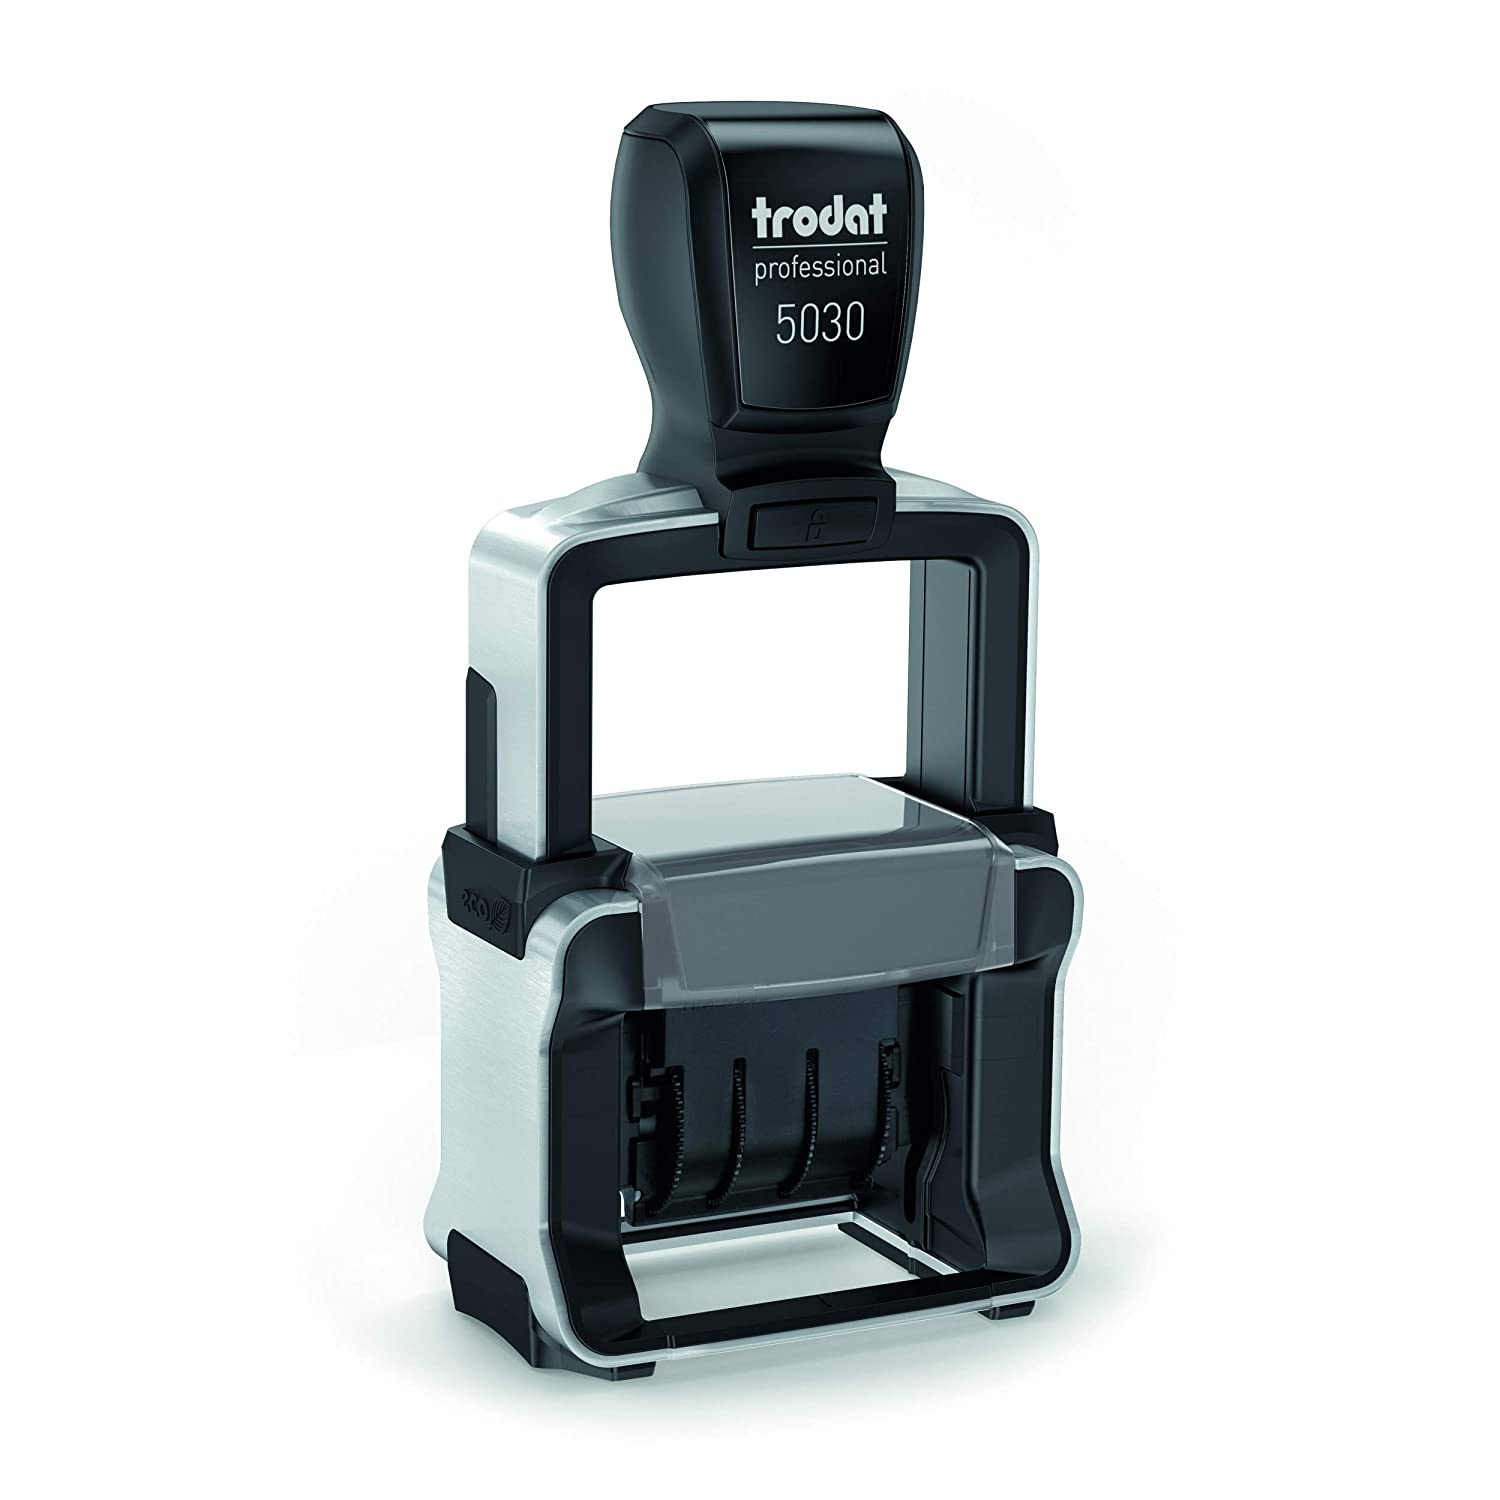 344b7d30c184 Trodat Professional 4.0 Date Stamp, Dater, Self-Inking, Impression Size: 1  5/8 x 3/8 Inches, Black (T5030)